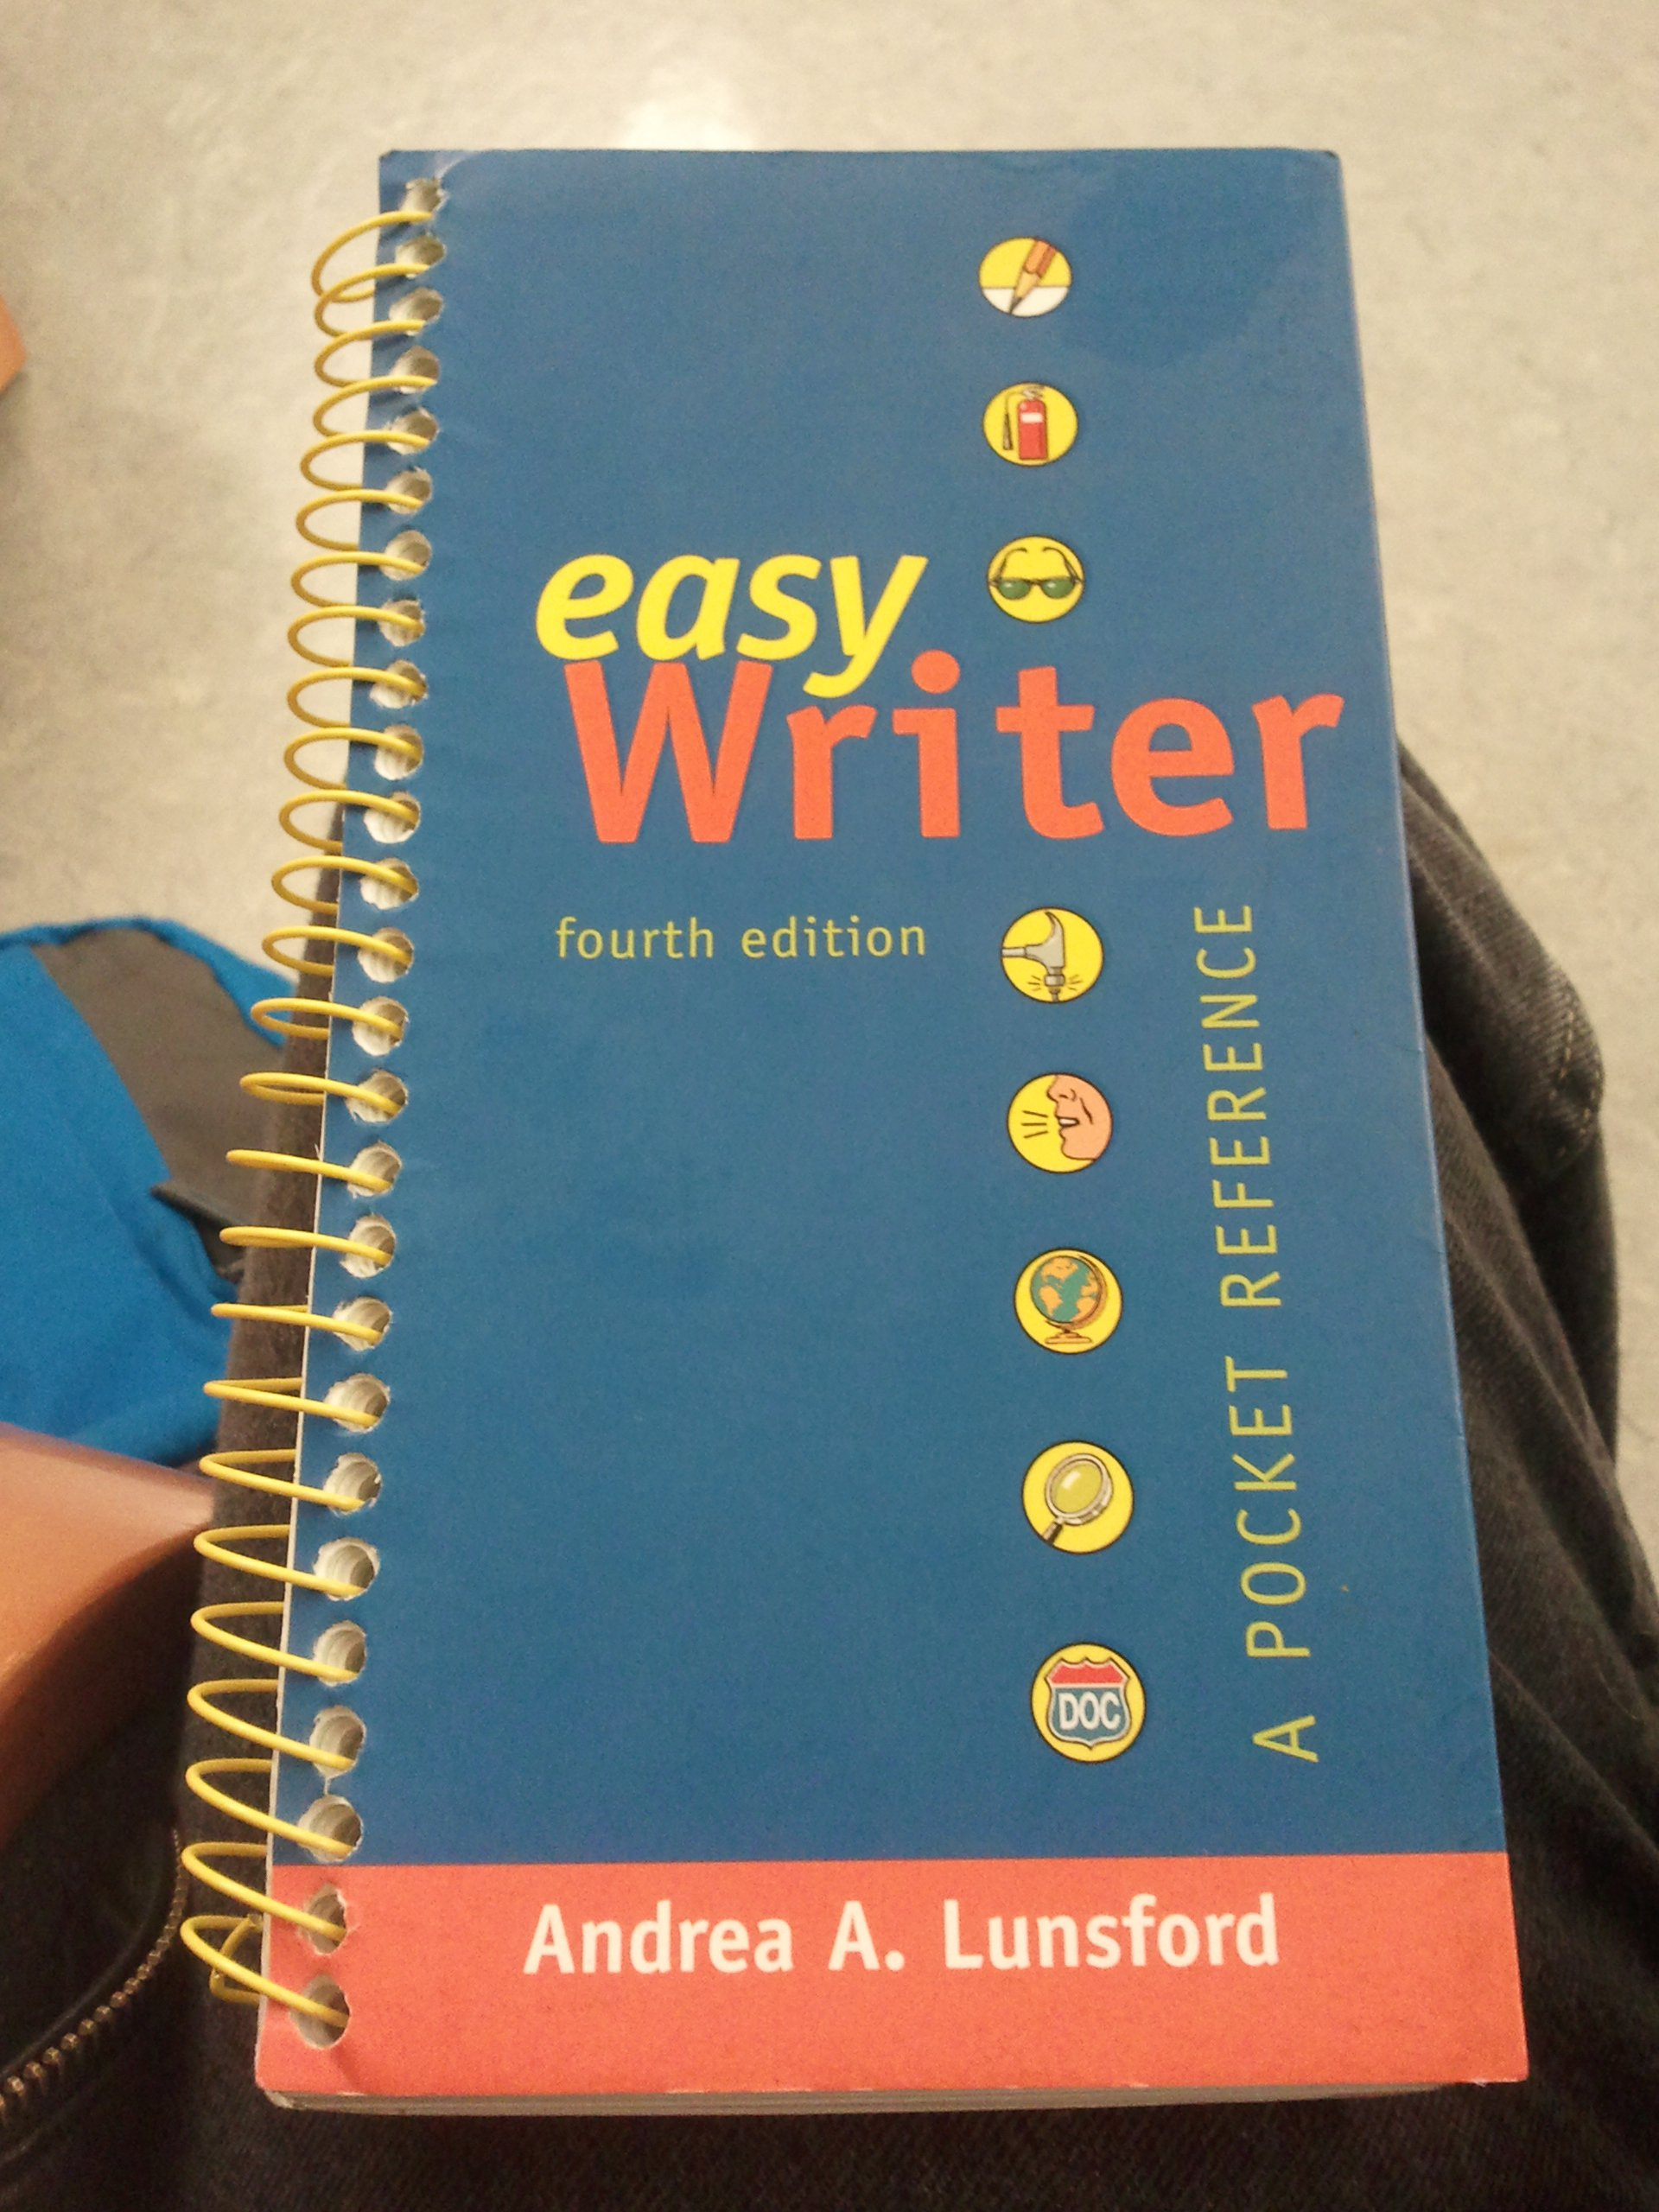 Easy Writer: A Pocket Reference, 4th Edition: Andrea A. Lunsford:  Amazon.com: Books